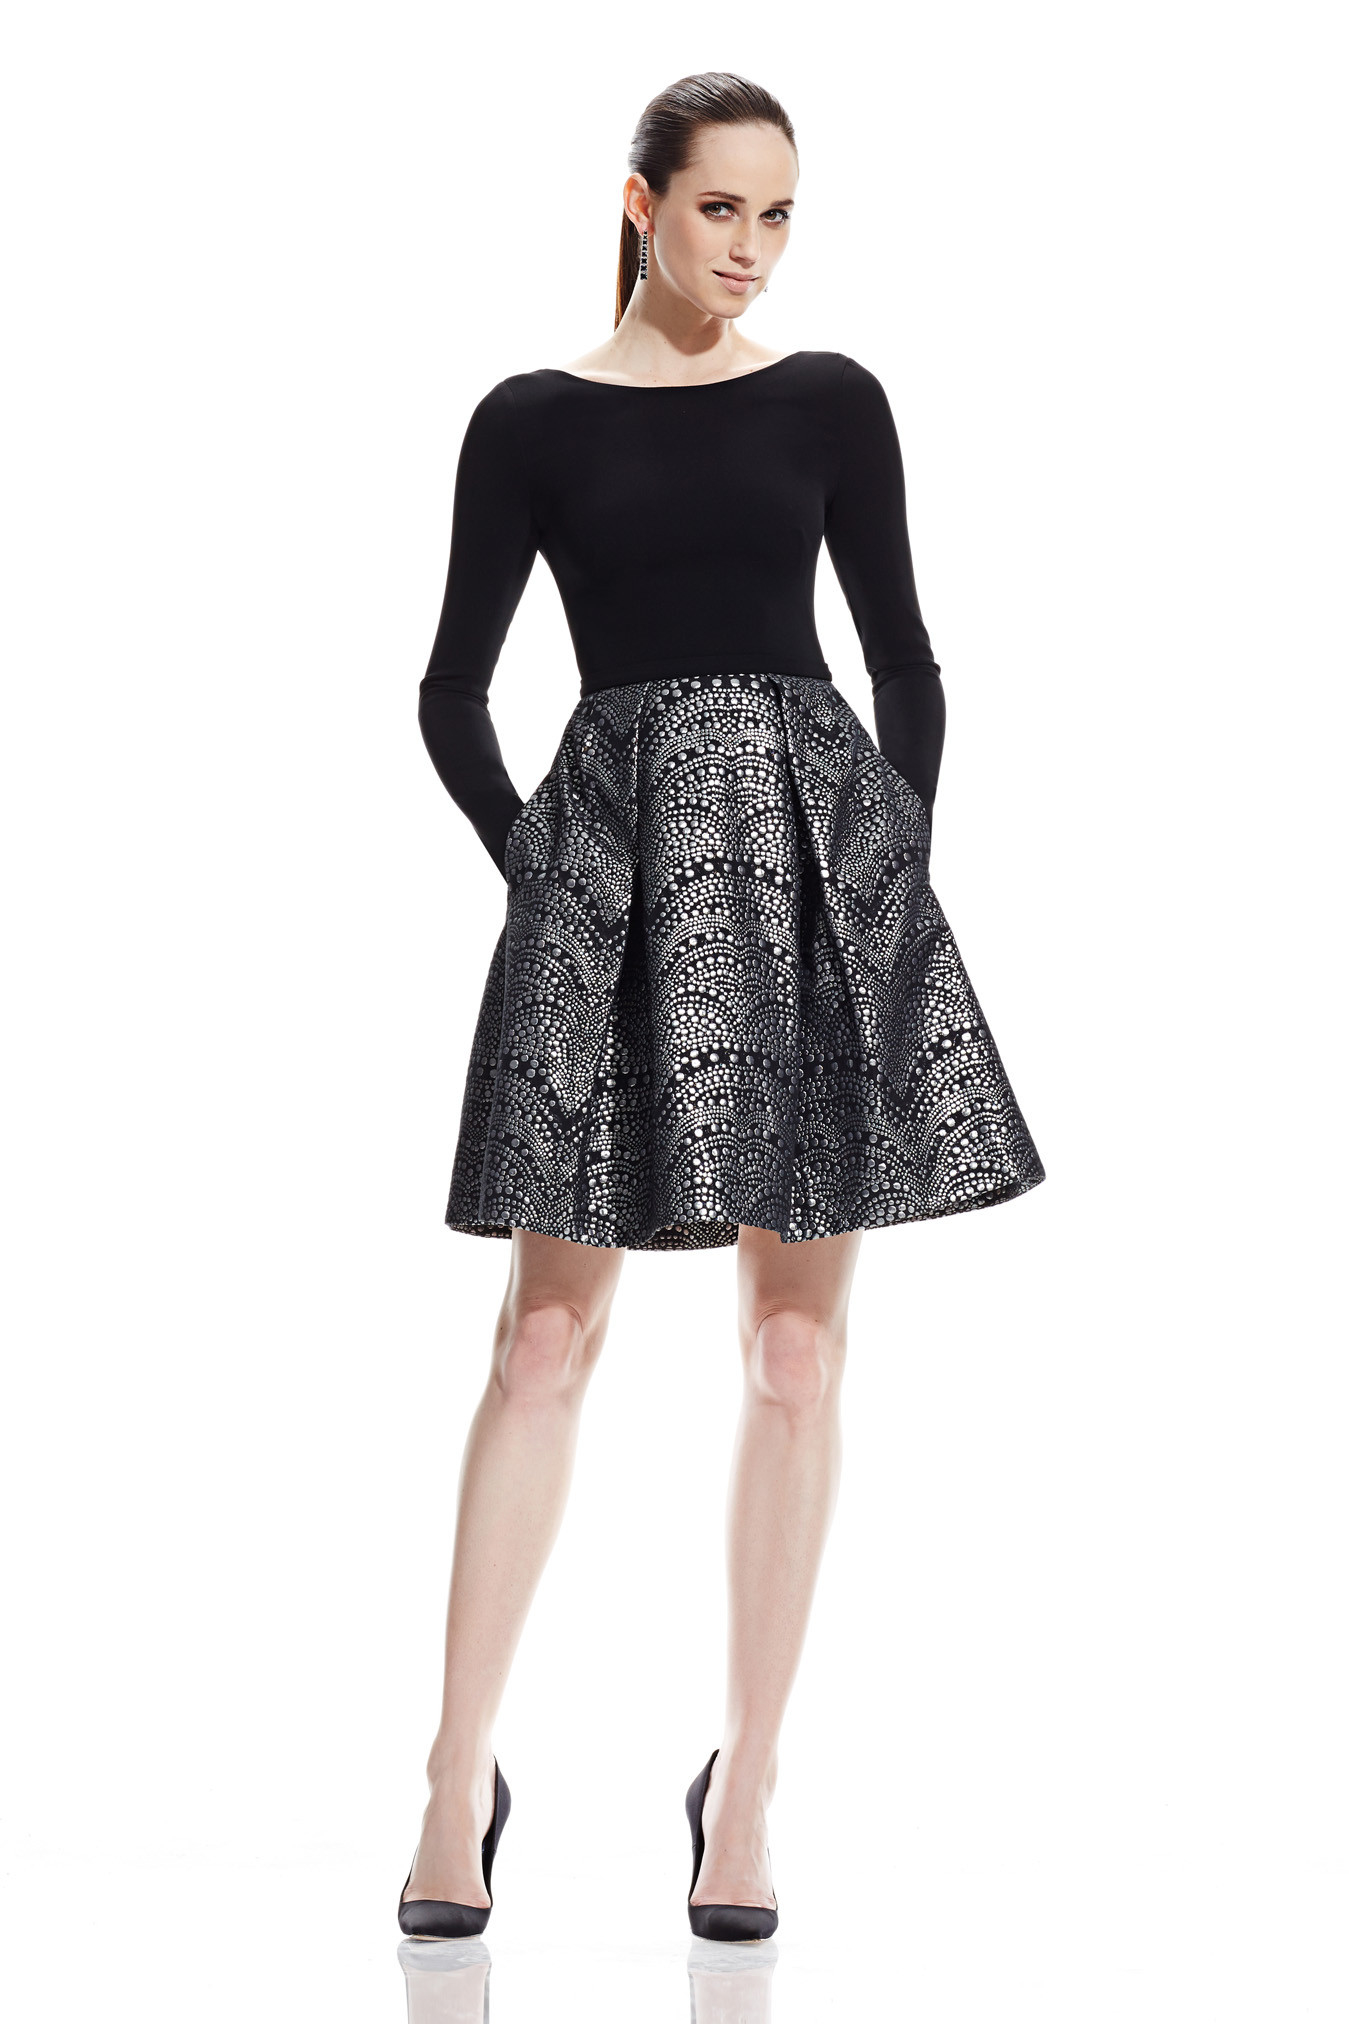 Little Black Dresses. steal all the stares in an all over sequin piece for party season, or keep it simple but chic with the little black dresses you can take from day to night with ease in effortless jersey basics. Basic Black Jersey Long Sleeve Bodycon Dress. £ Black Long Sleeve Wrap Skirt Bodycon Dress. £ Black Satin.